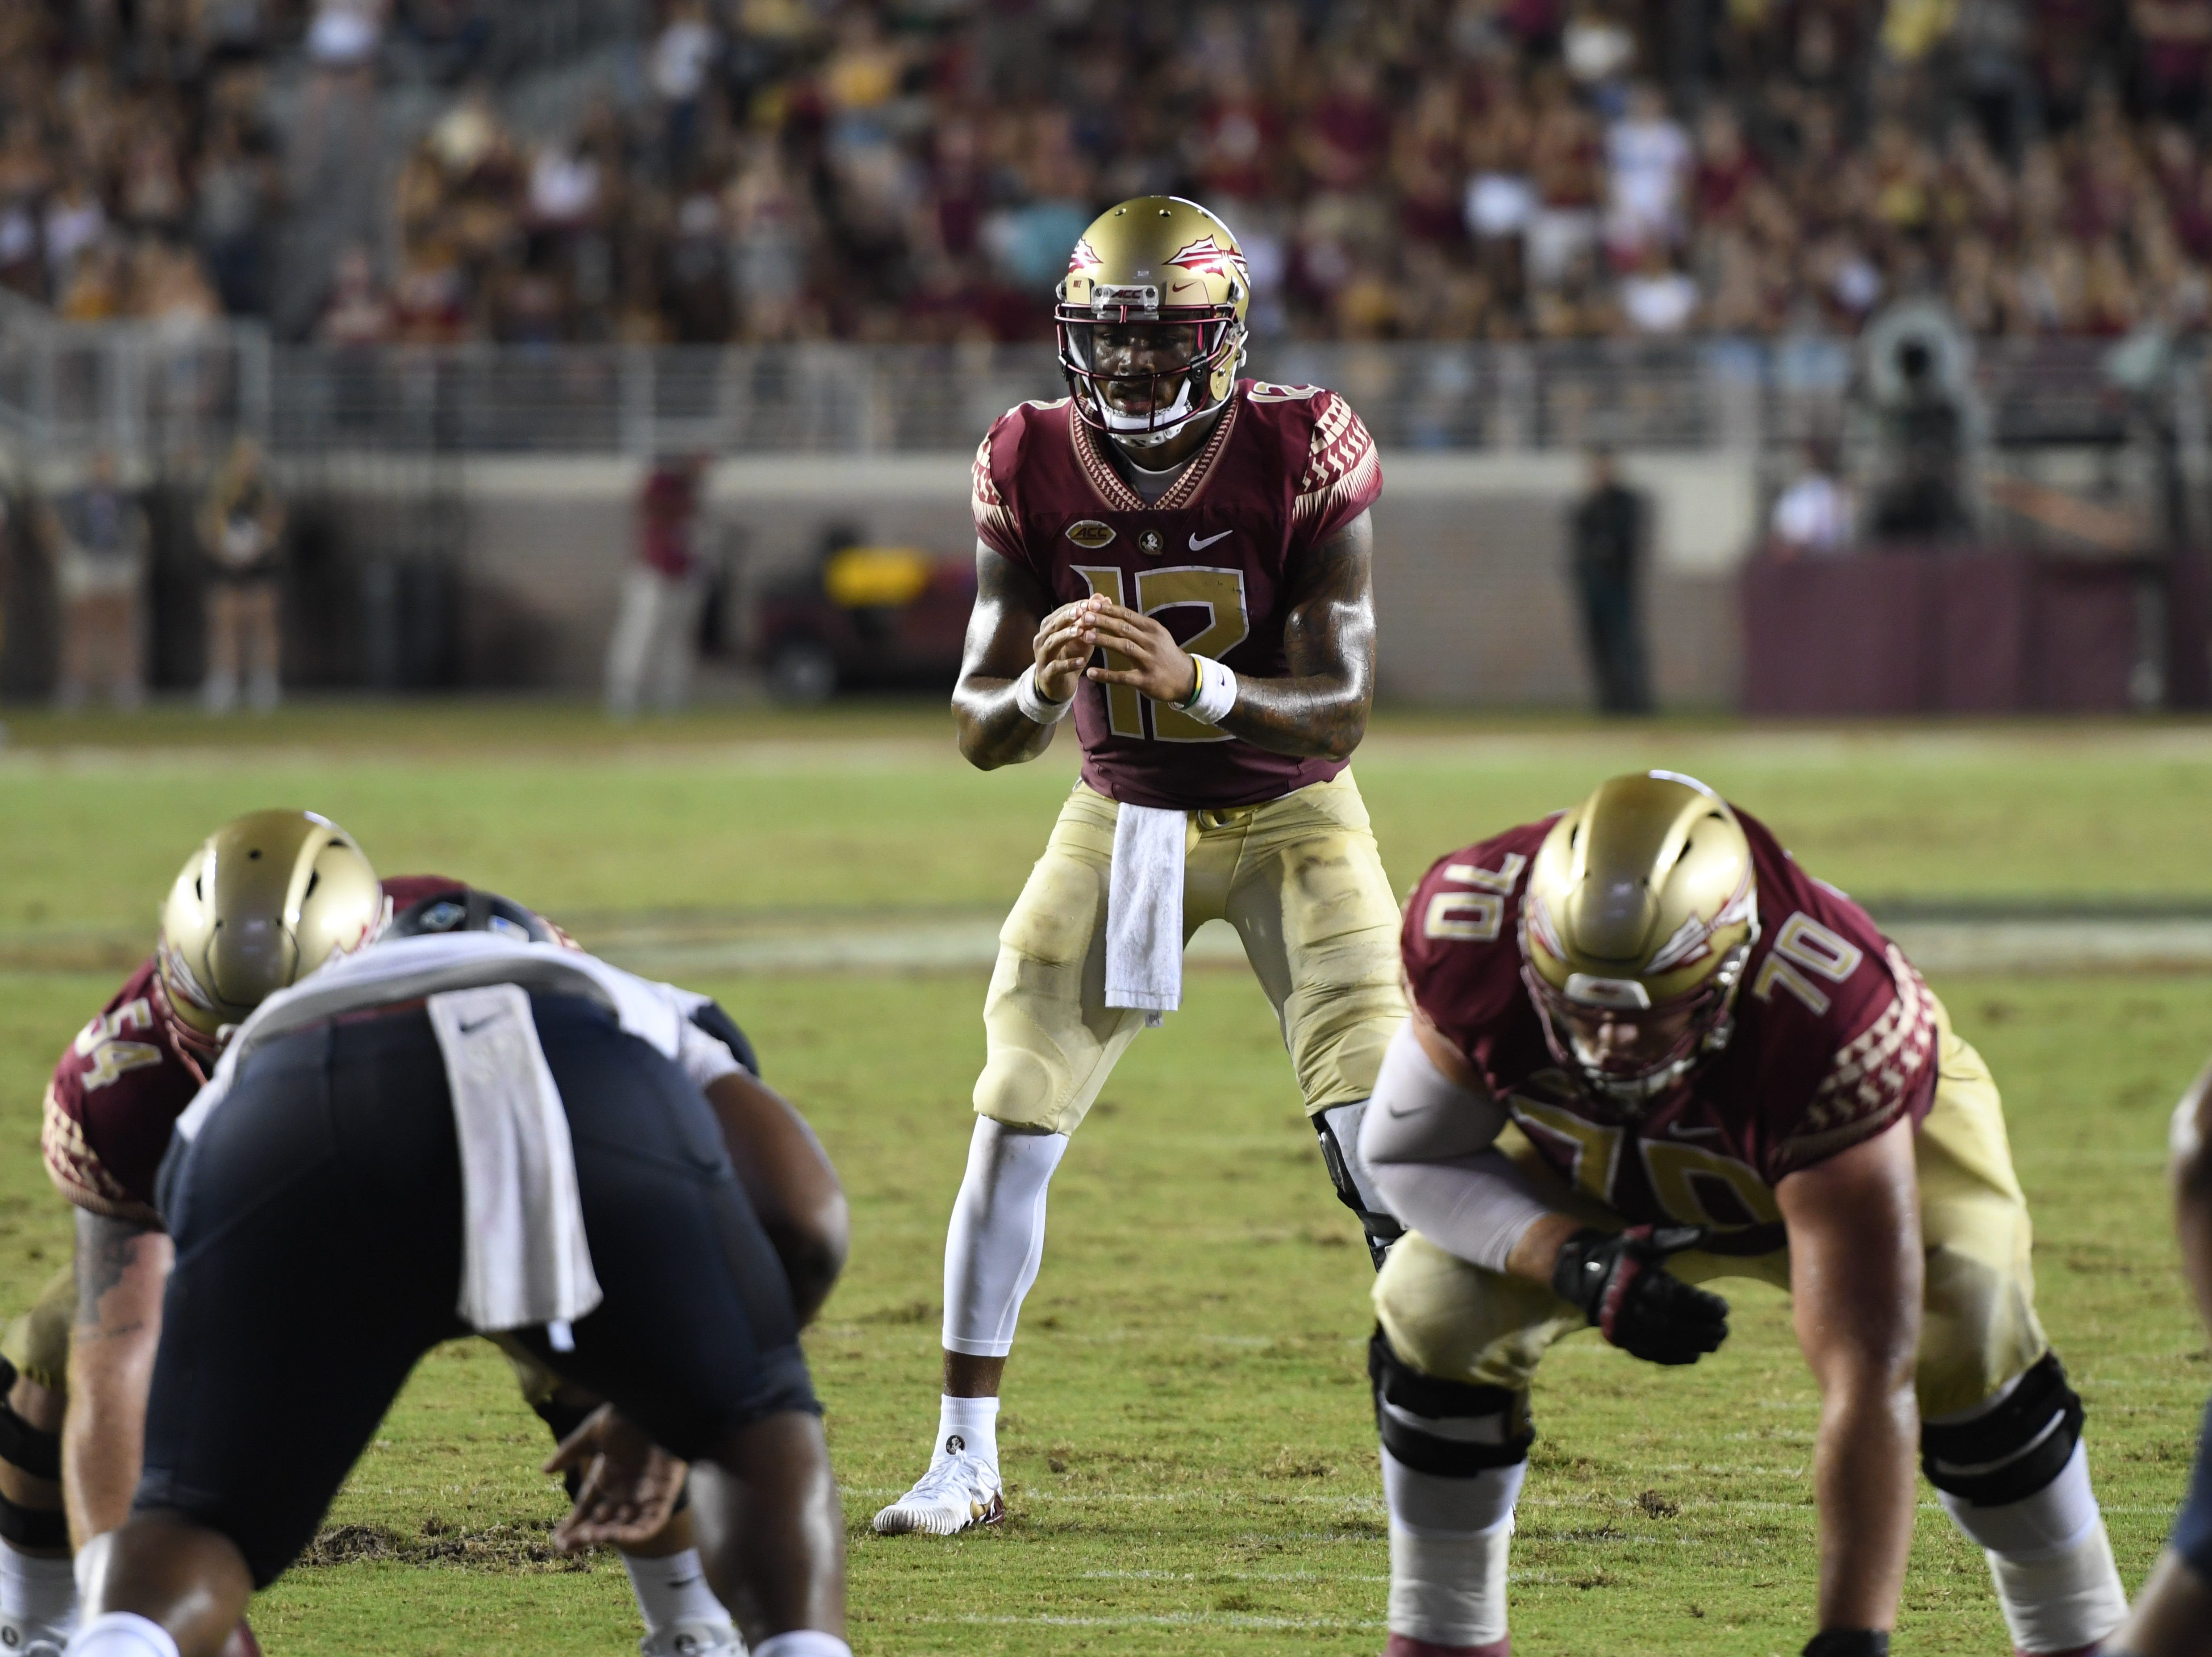 FSU redshirt junior Deondre Francois (12) under center during the second quarter of FSU's matchup against Samford on Saturday night at Doak Campbell Stadium.